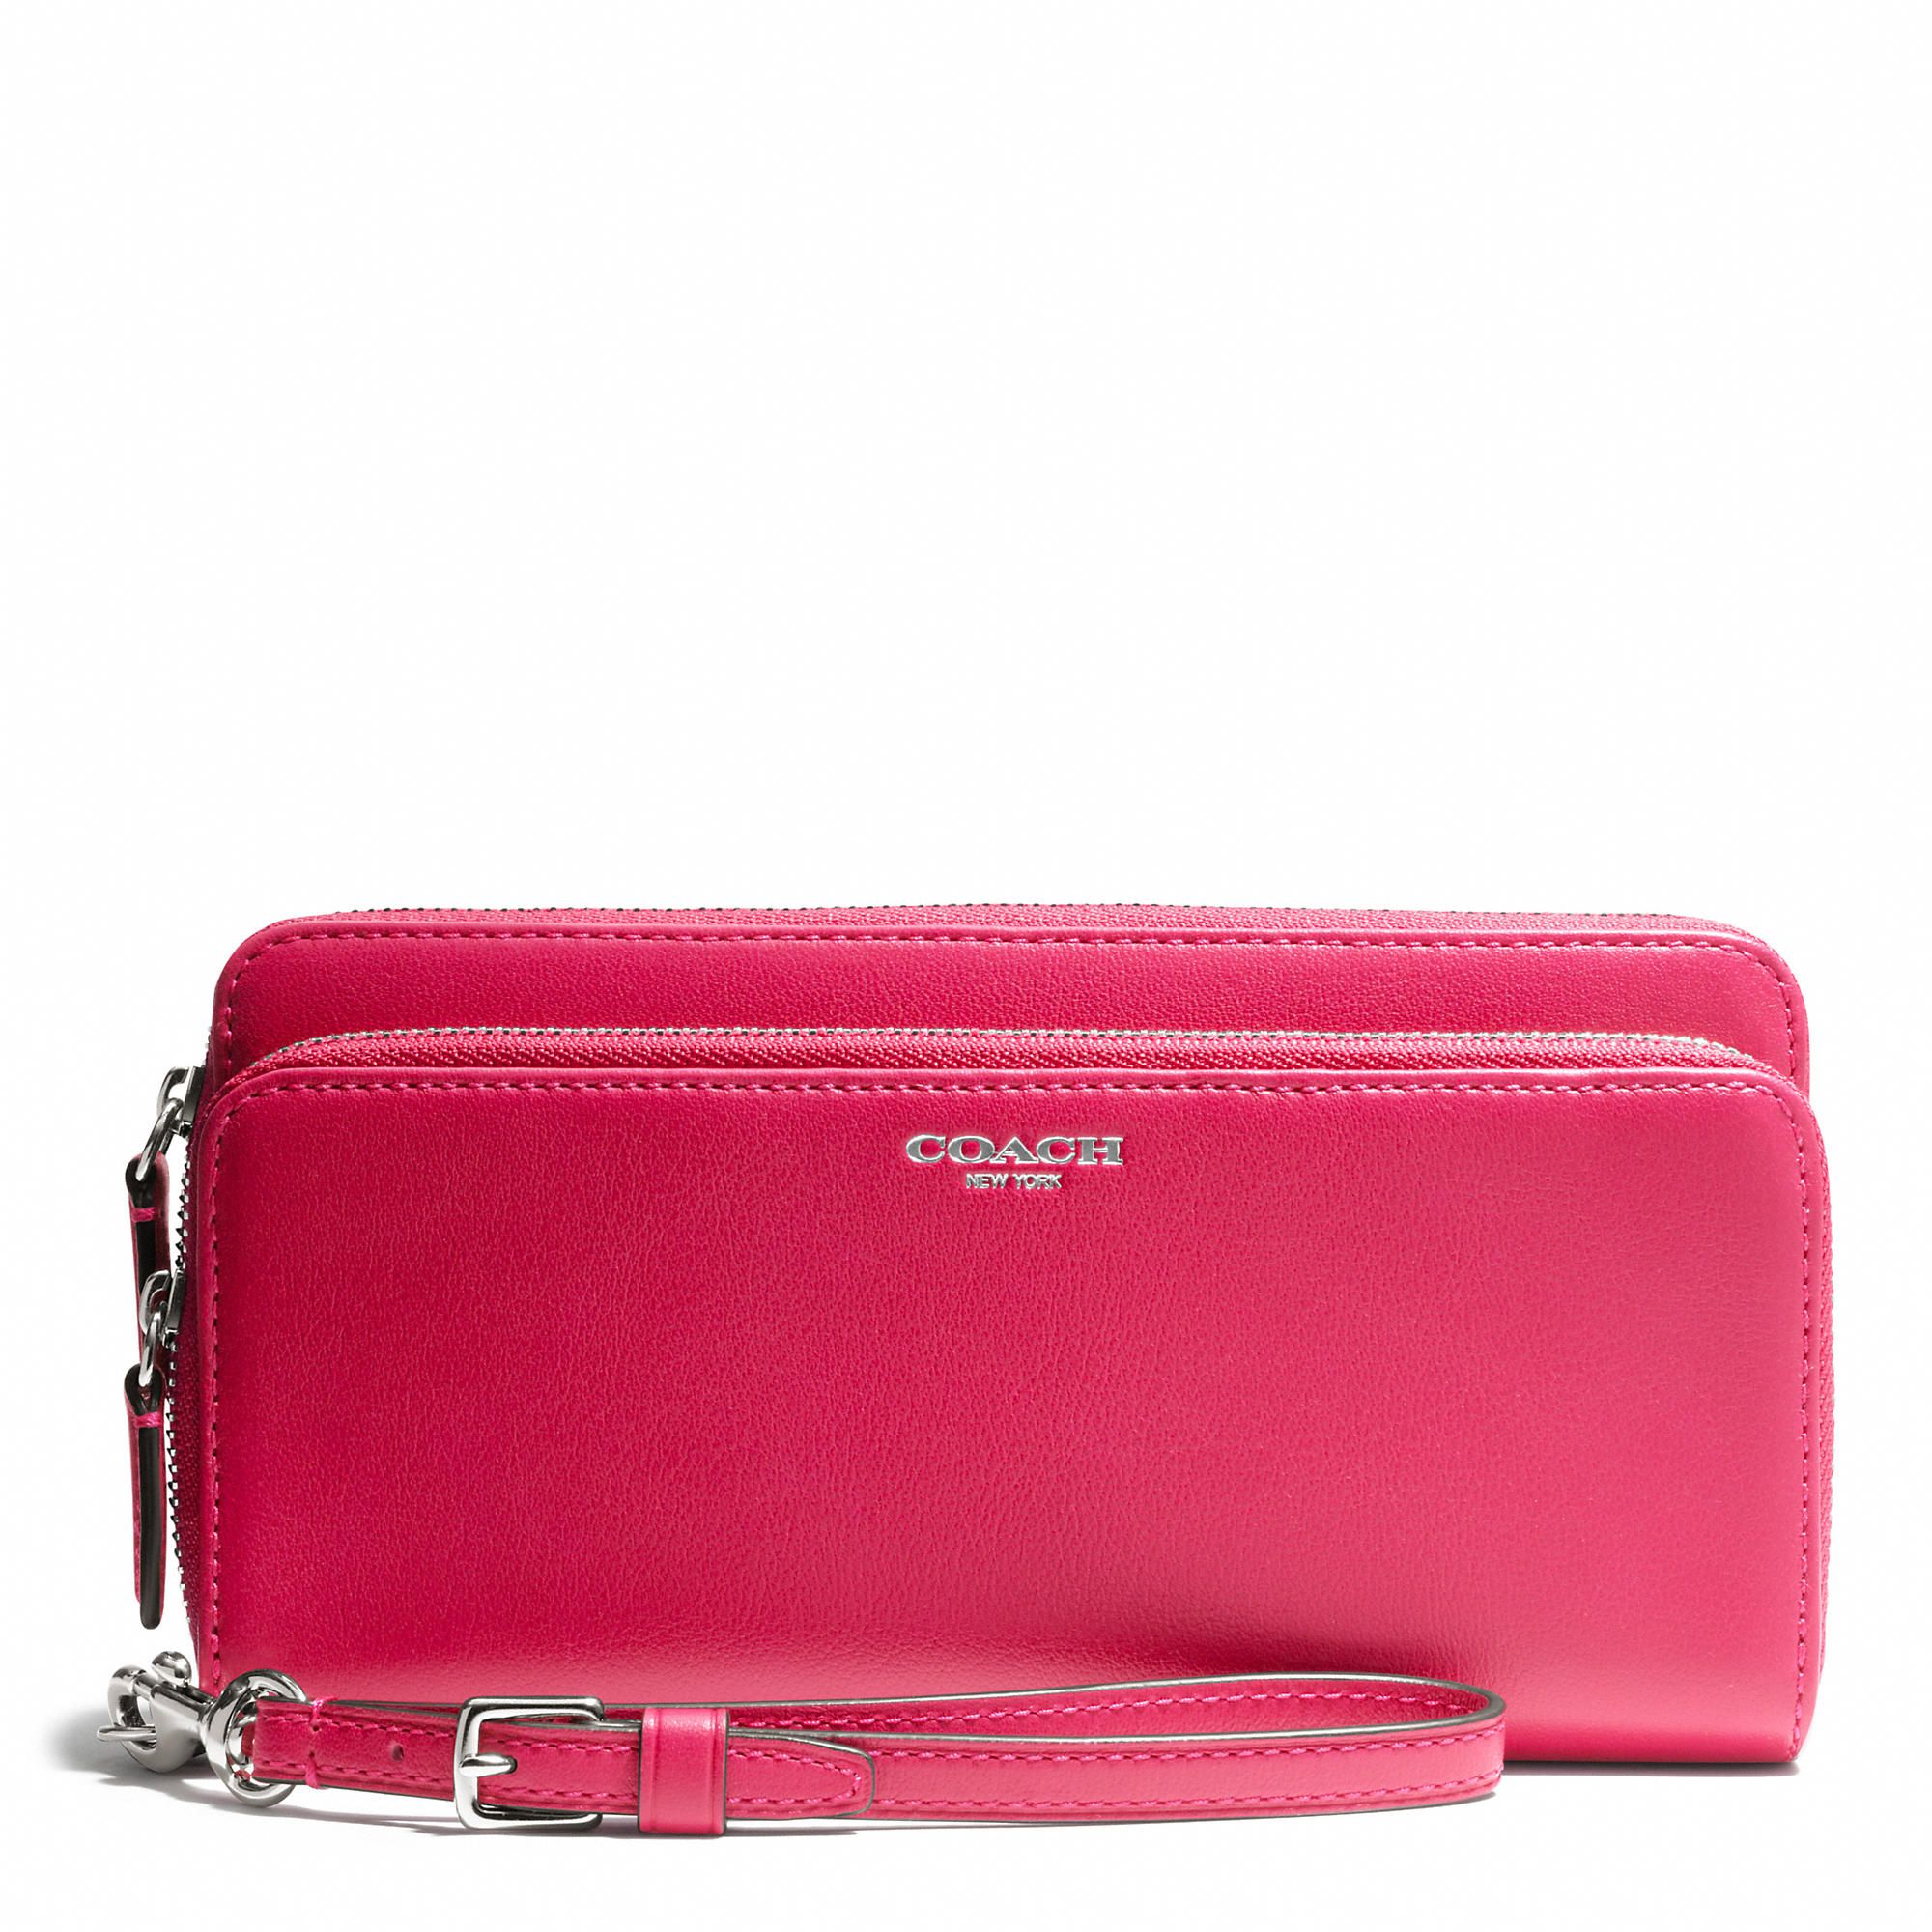 Coach :: LEGACY DOUBLE ACCORDION ZIP WALLET IN LEATHER.  I think this one will be the winner.  It was